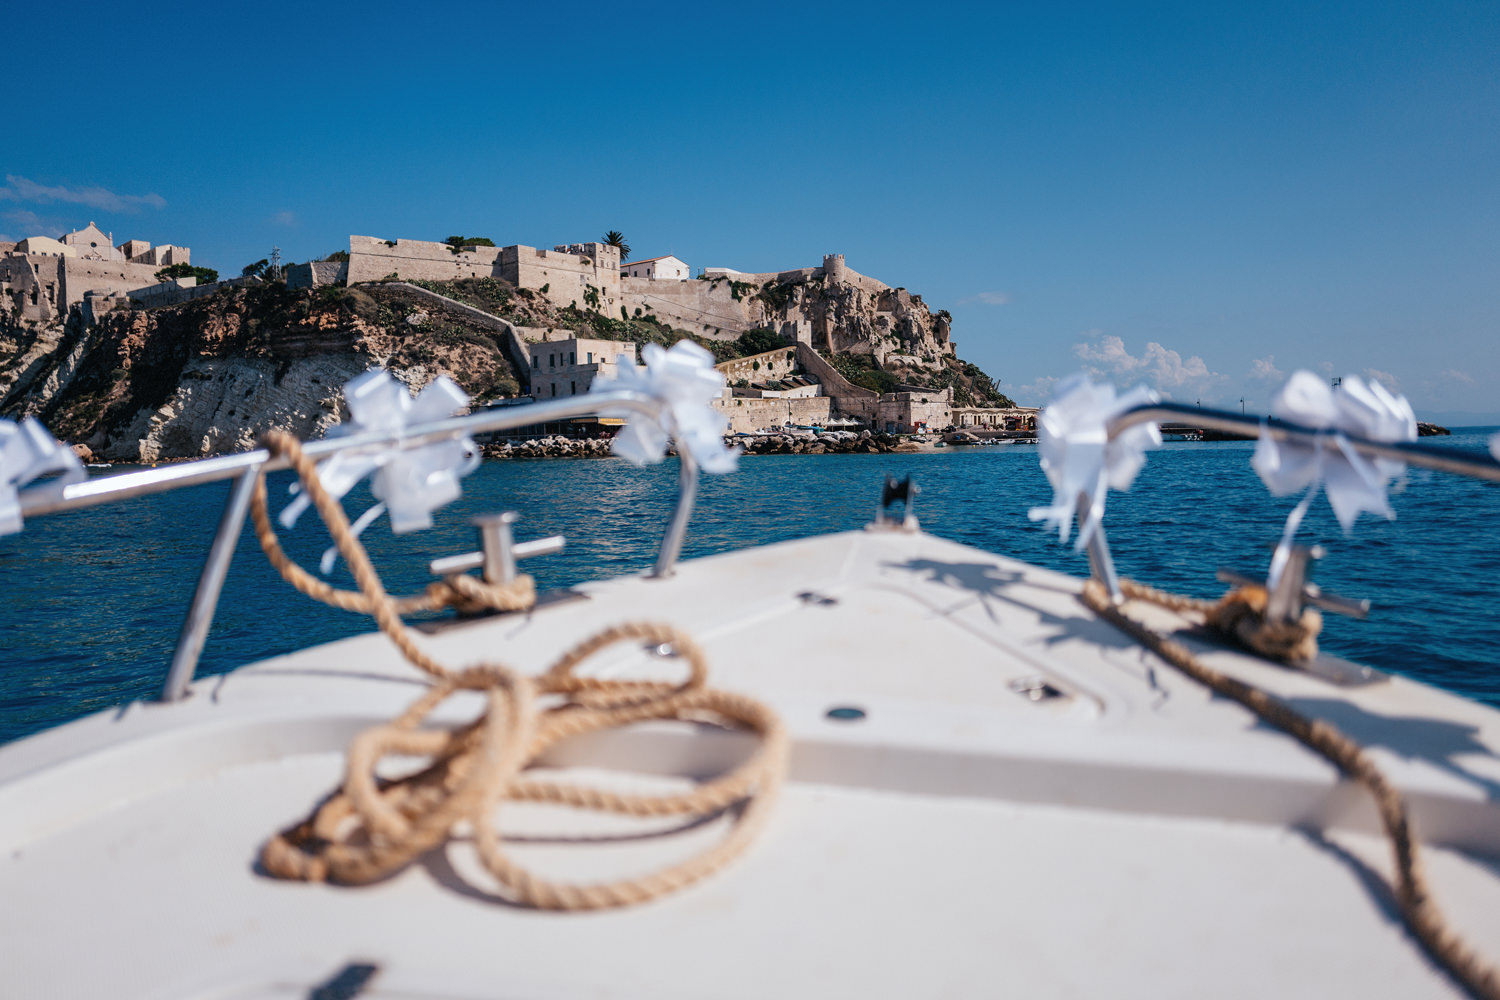 destination wedding tremiti islands giulia giuseppe ostrovy tremiti svatba